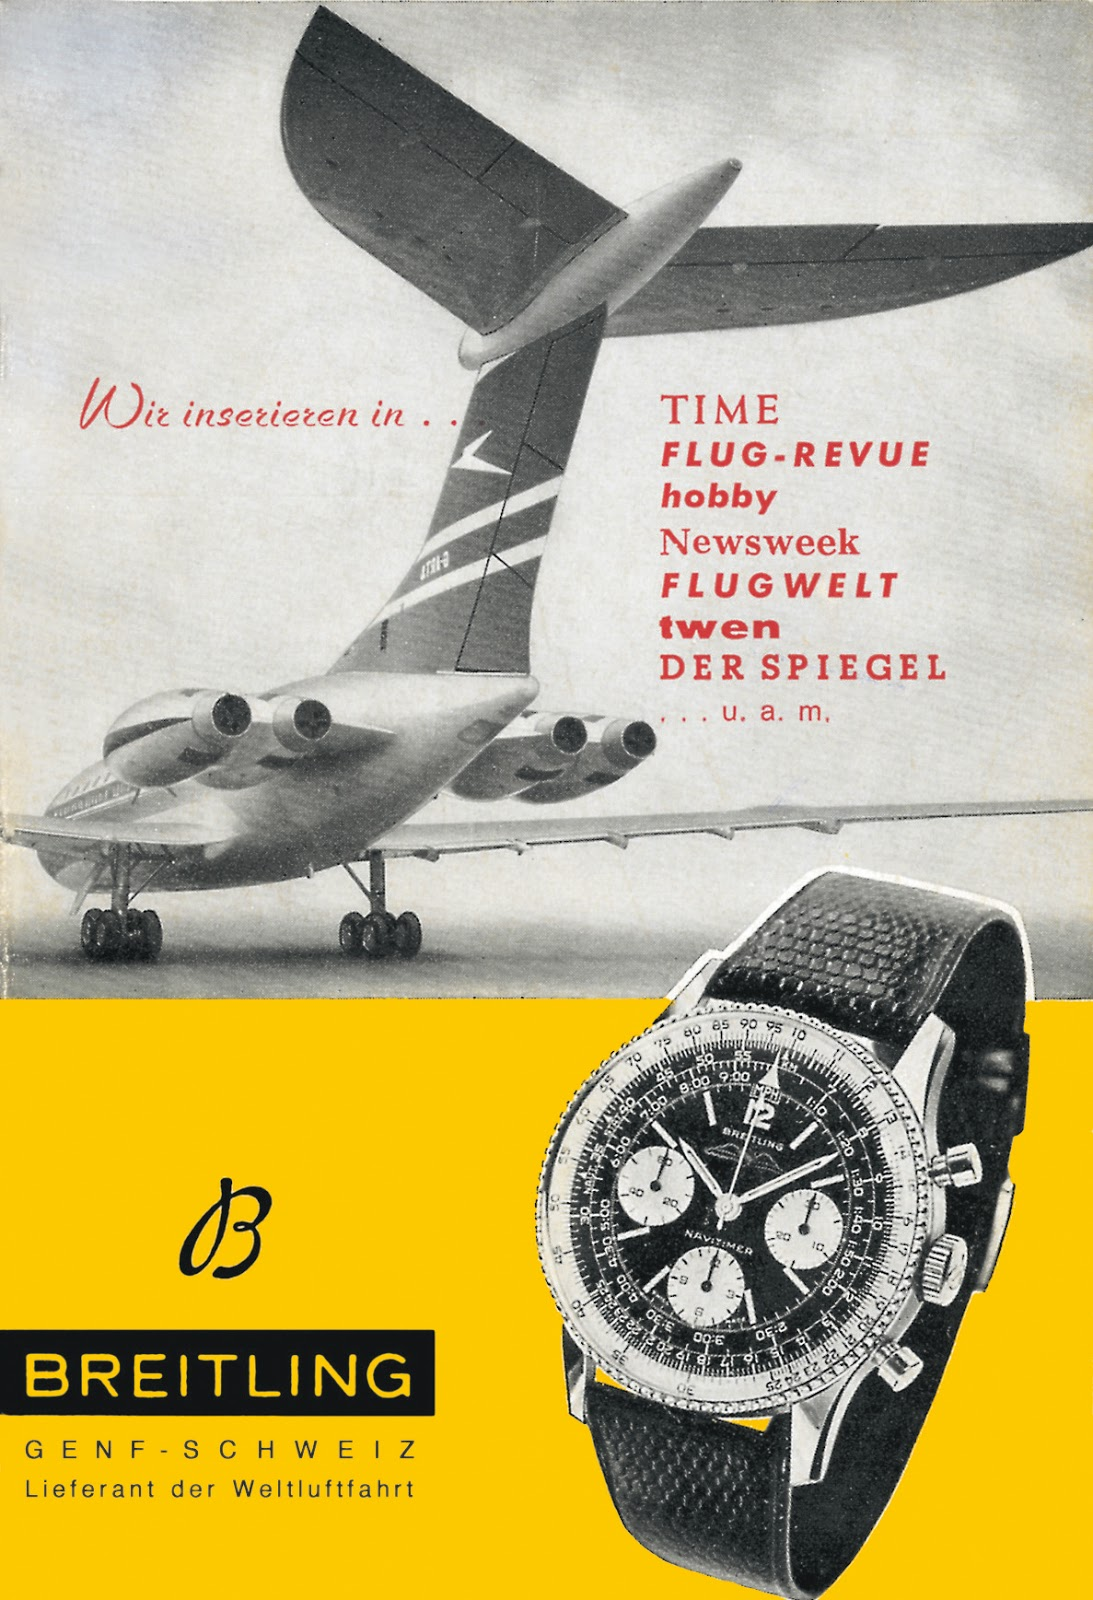 1960's Breitling advertisement with the legendary Navitimer (PPR/Breitling)